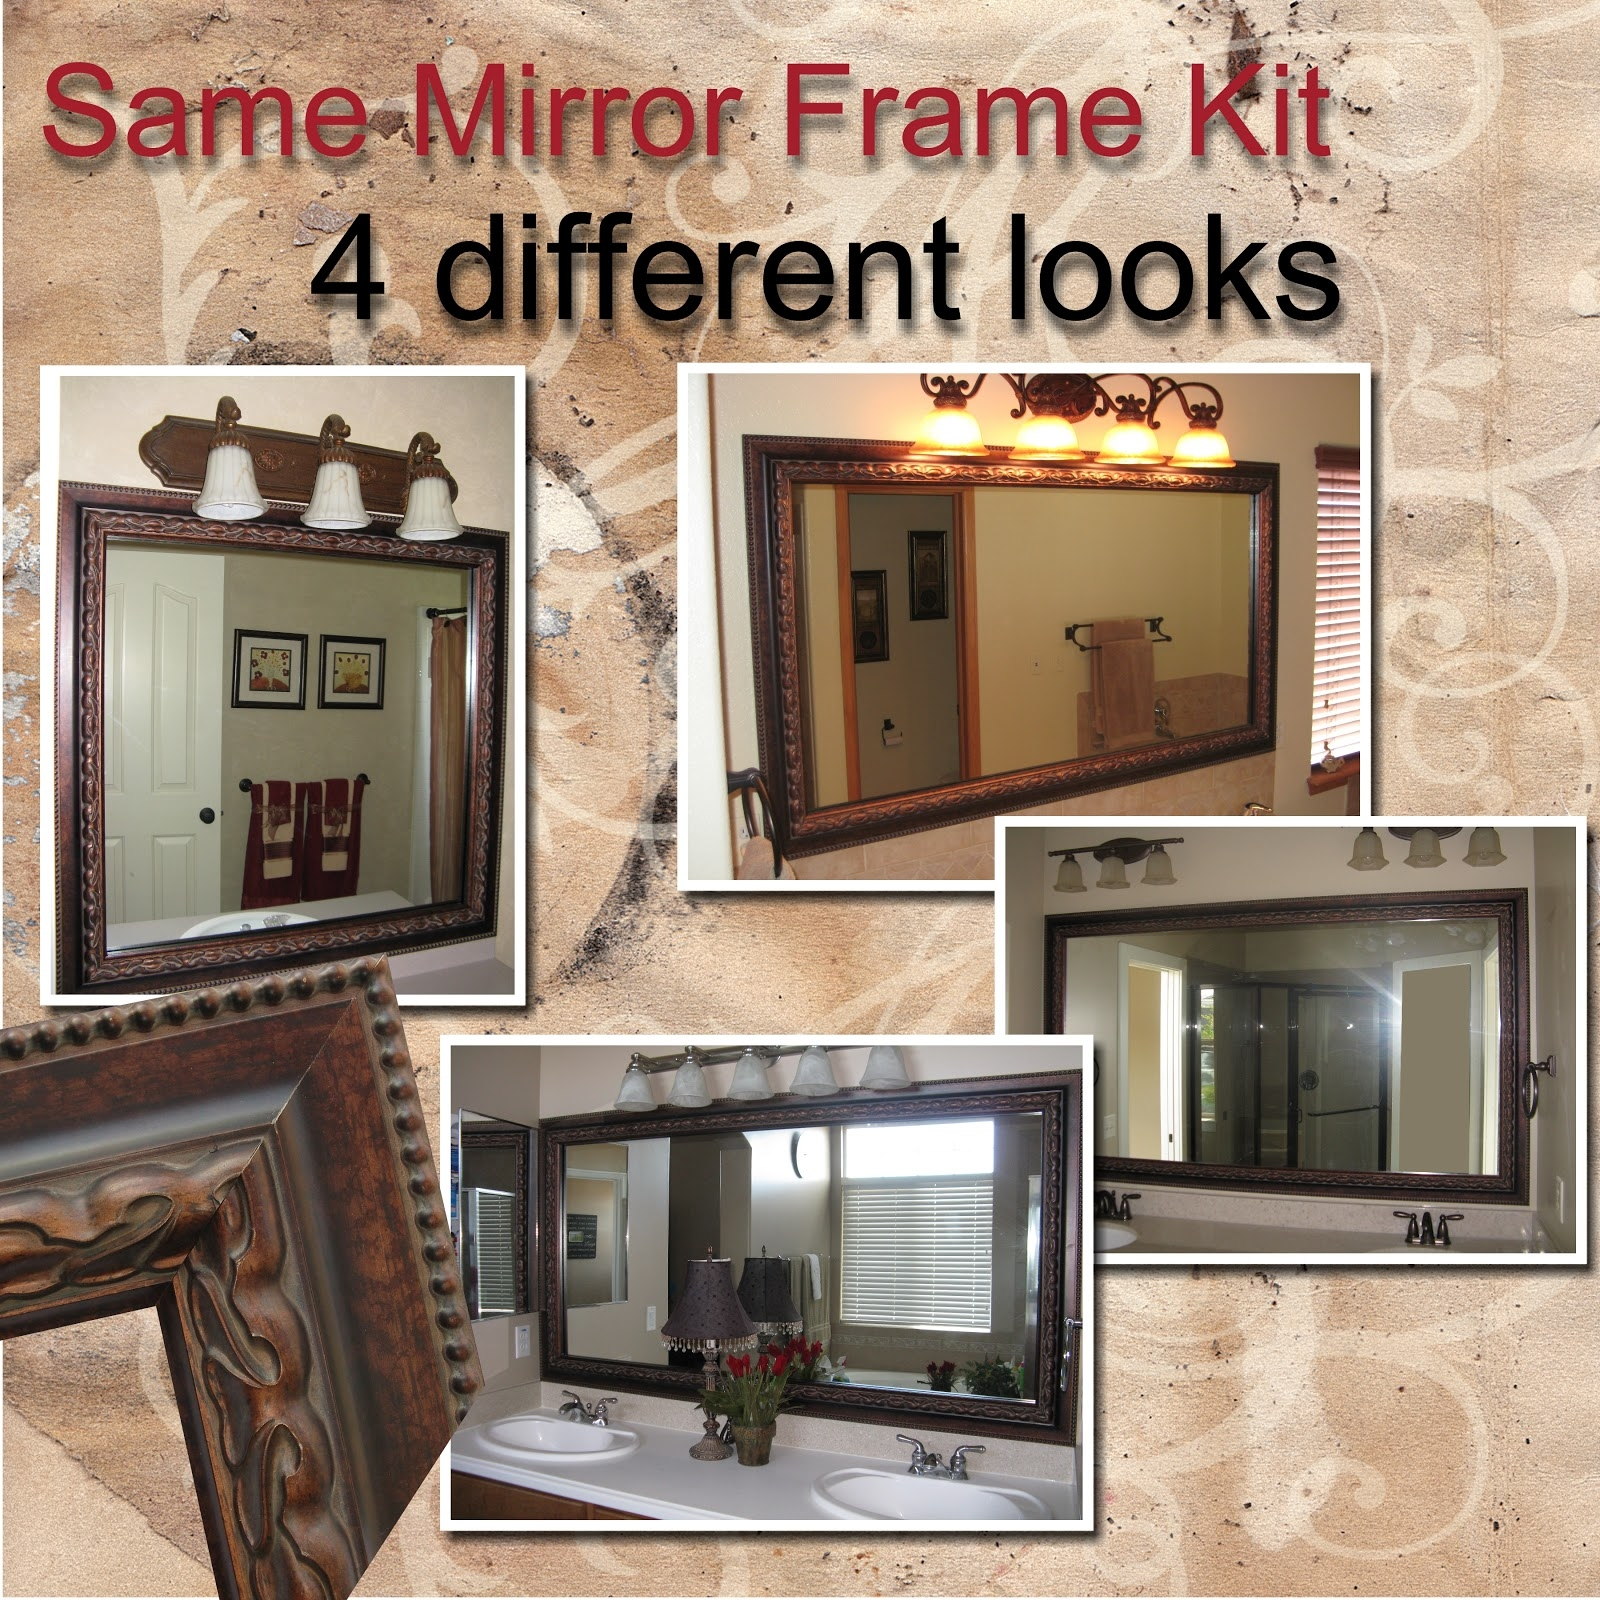 Frame Bathroom Mirror Kit